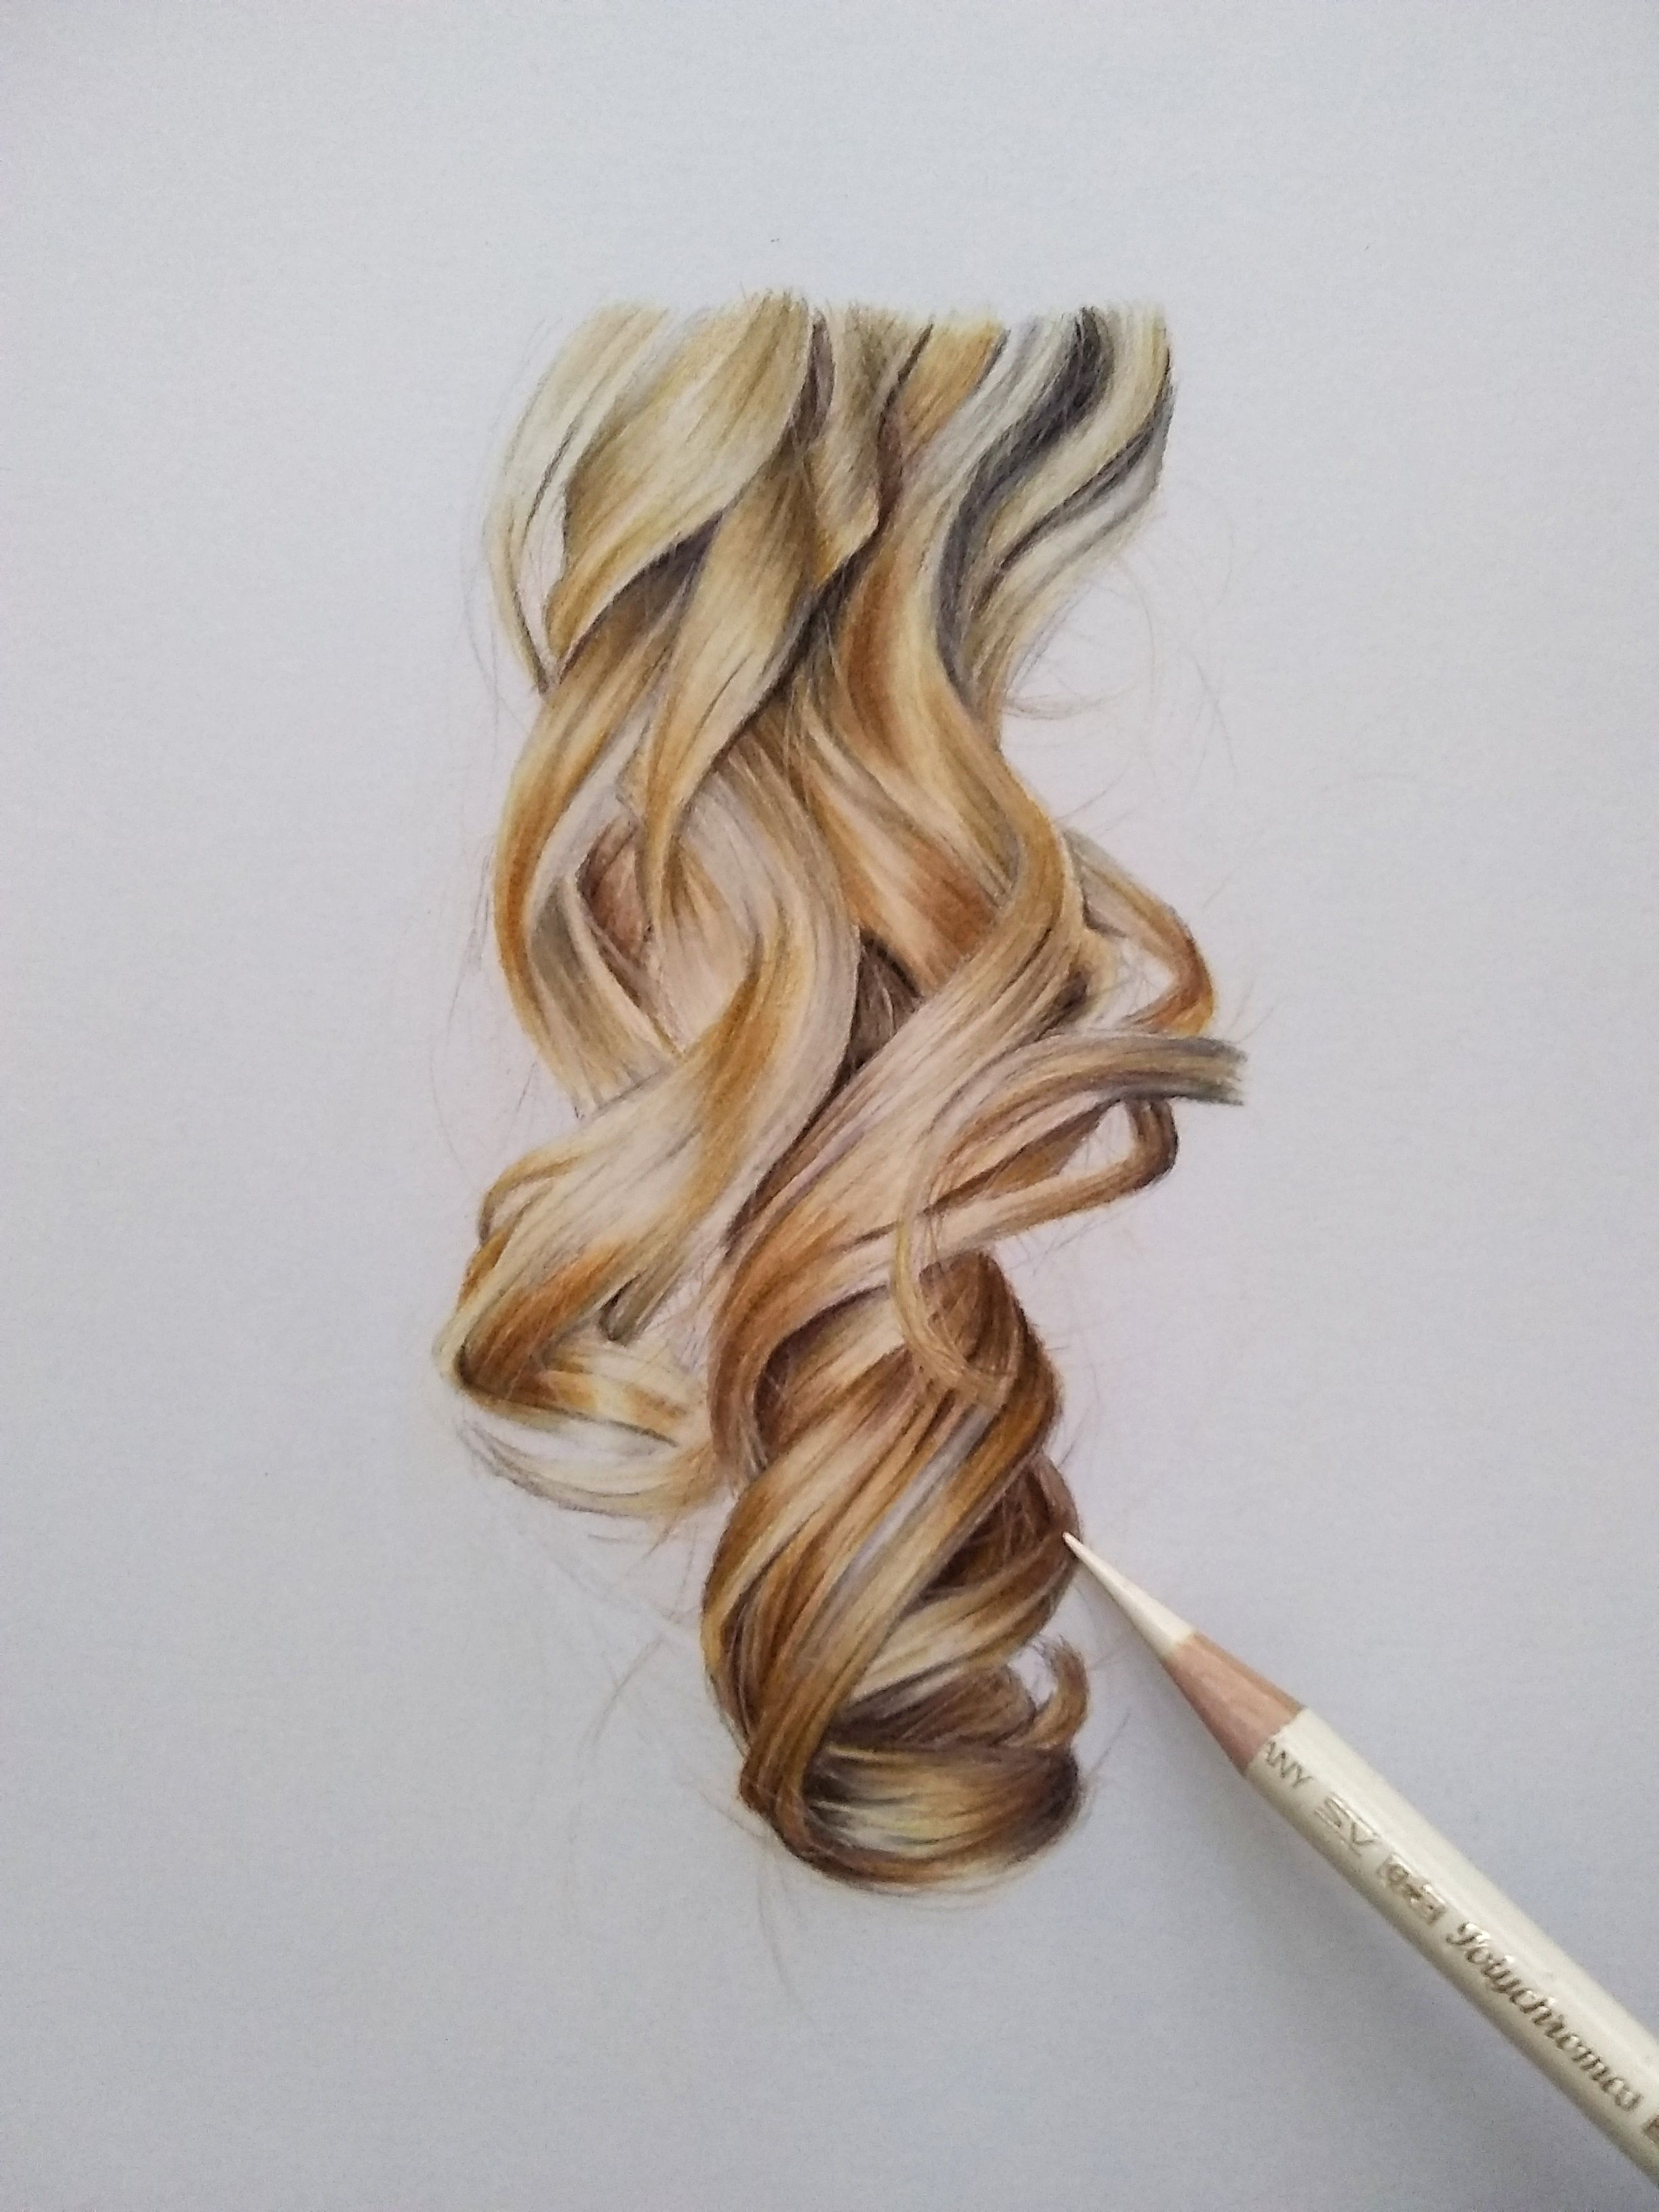 Draw Hairstyles Learn How To Draw Blonde Curls In Colored Pencils In 2020 Color Pencil Drawing Watercolour Hair How To Draw Hair